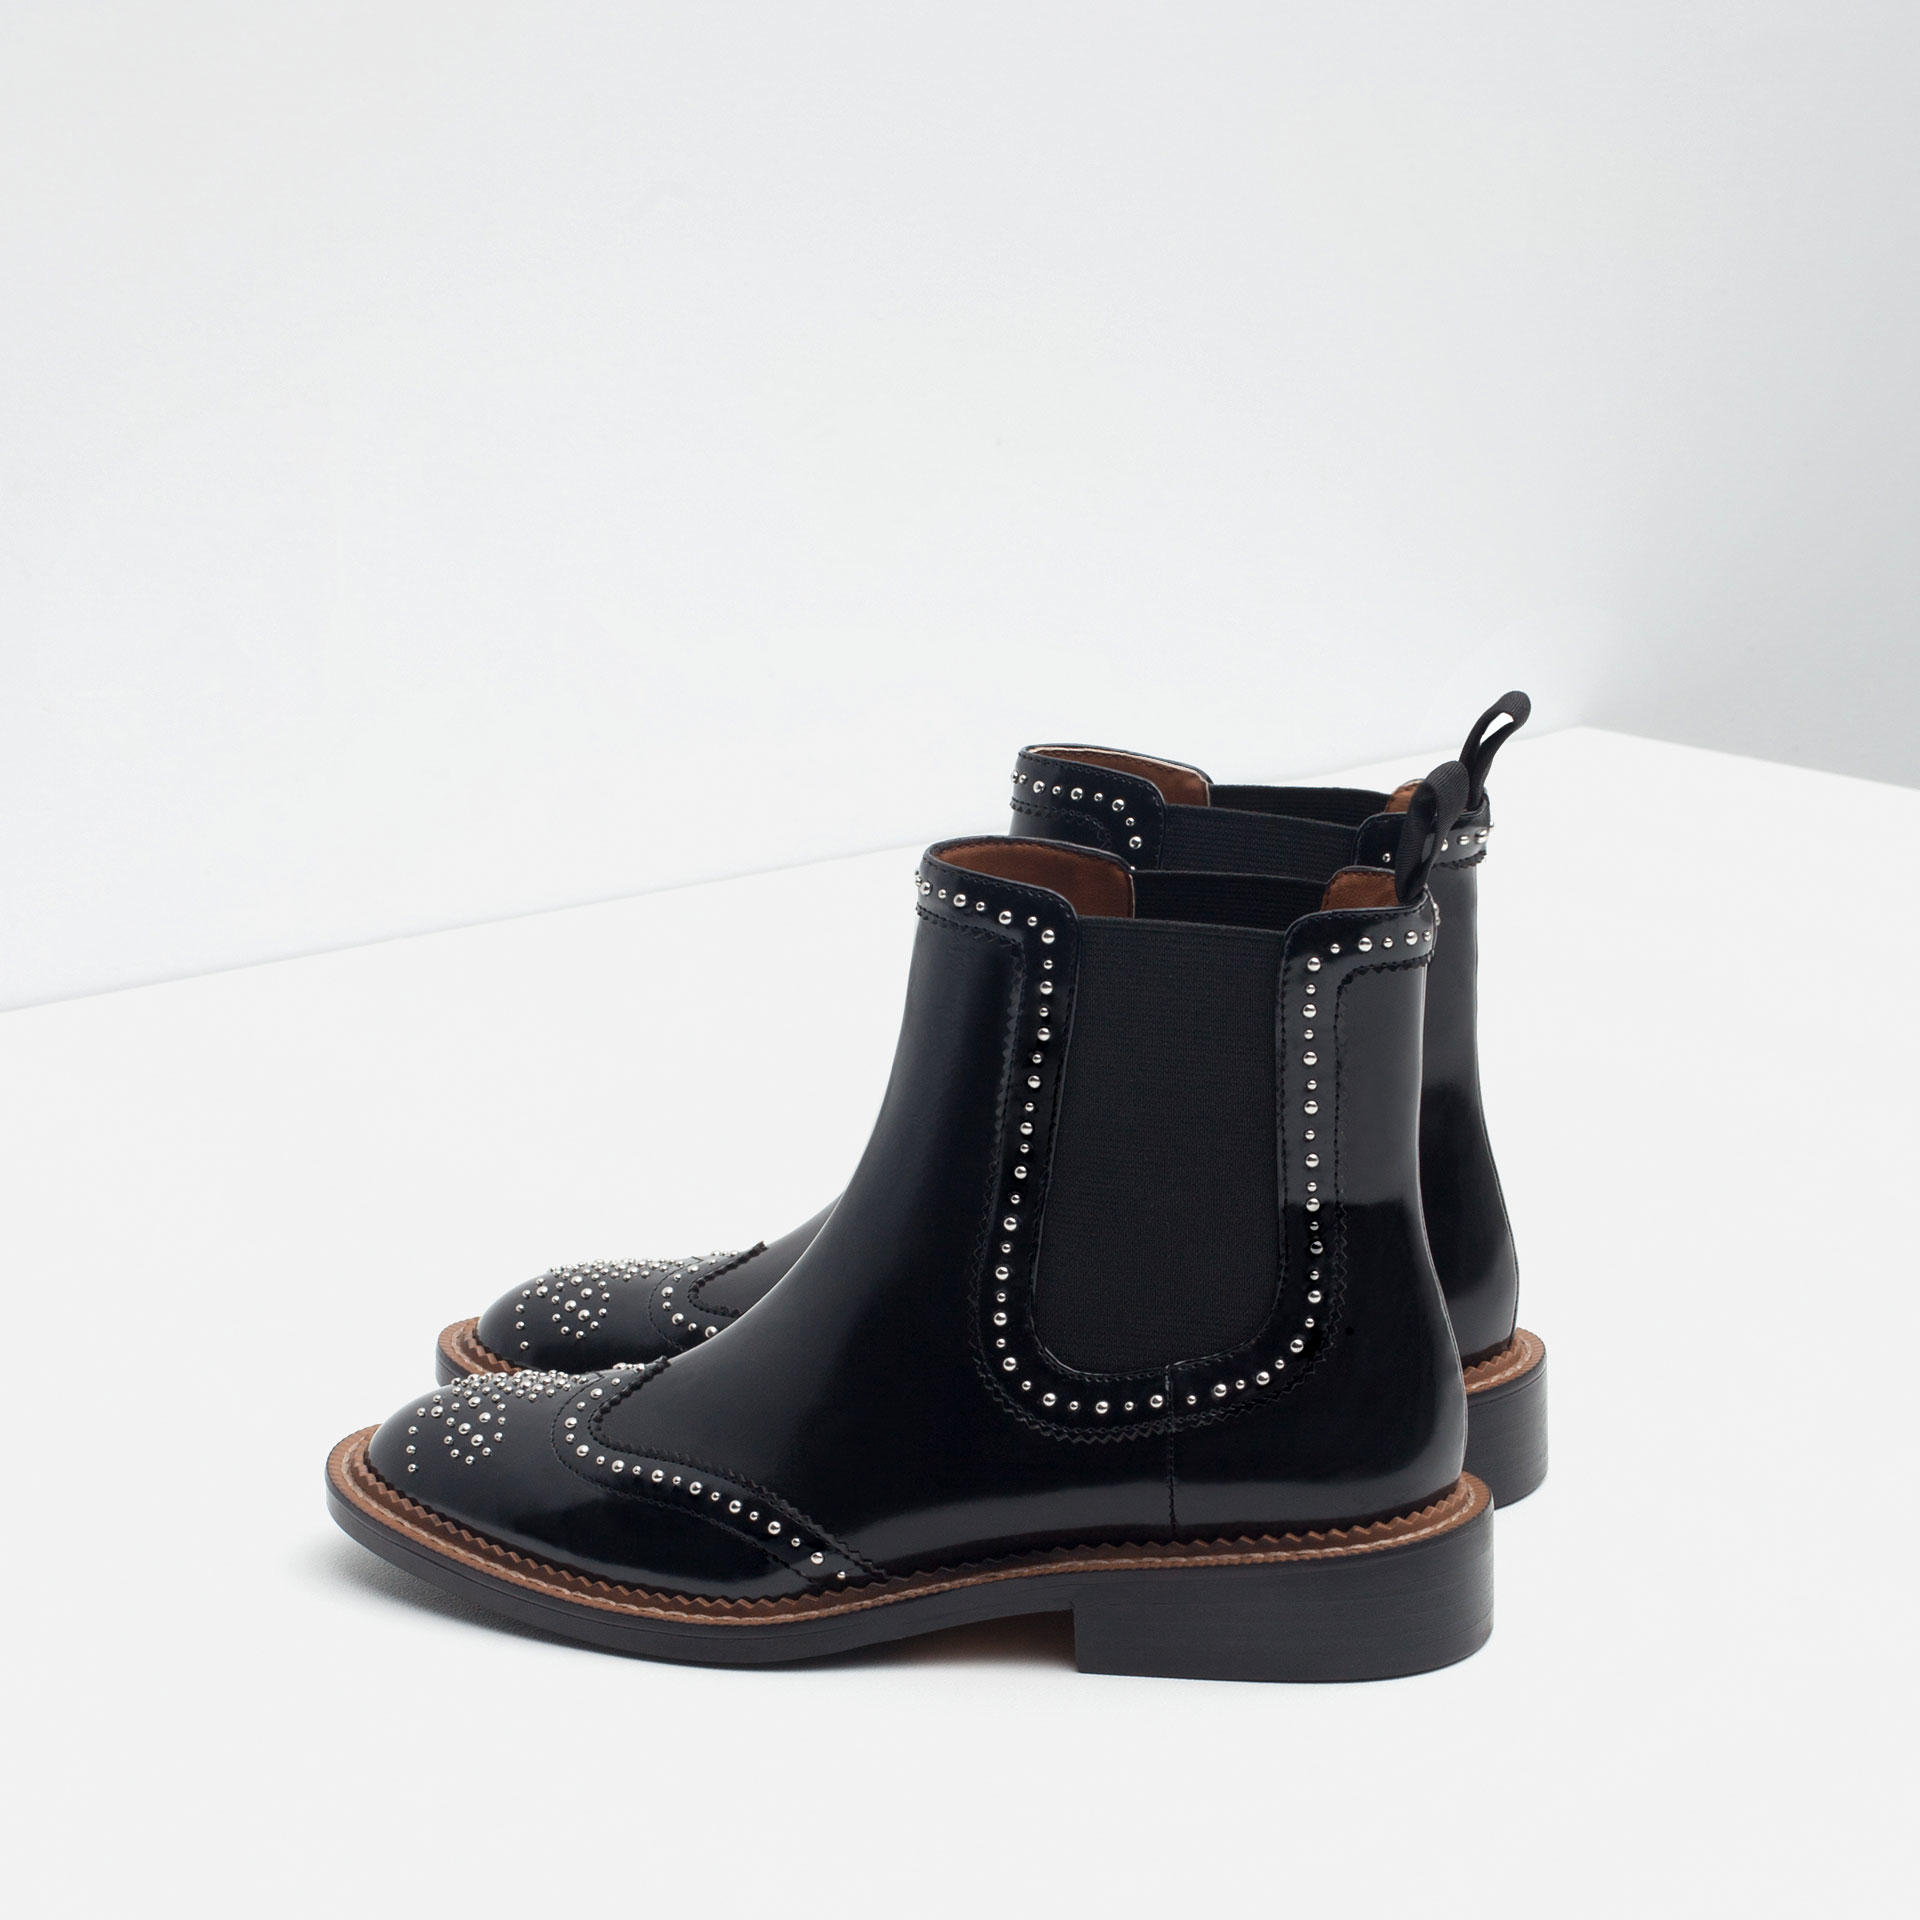 Zara Micro-studded Flat Leather Booties in Black   Lyst